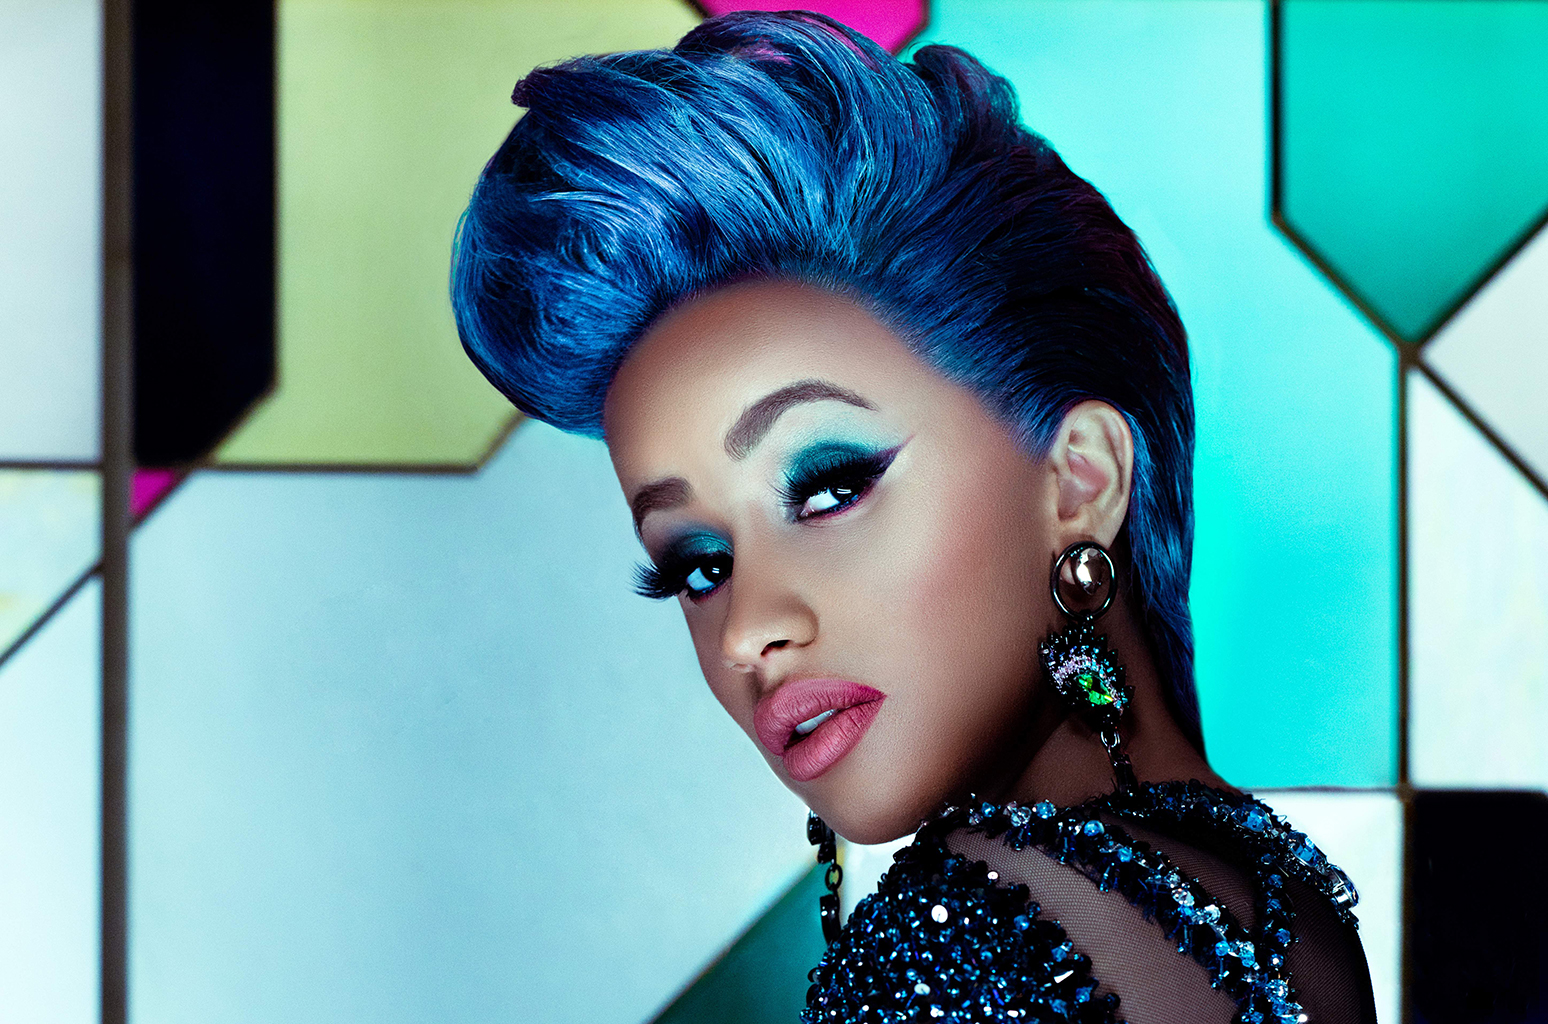 Cardi-B-press-photo-02-by-Jora-Frantzis-2018-billboard-1548.jpg